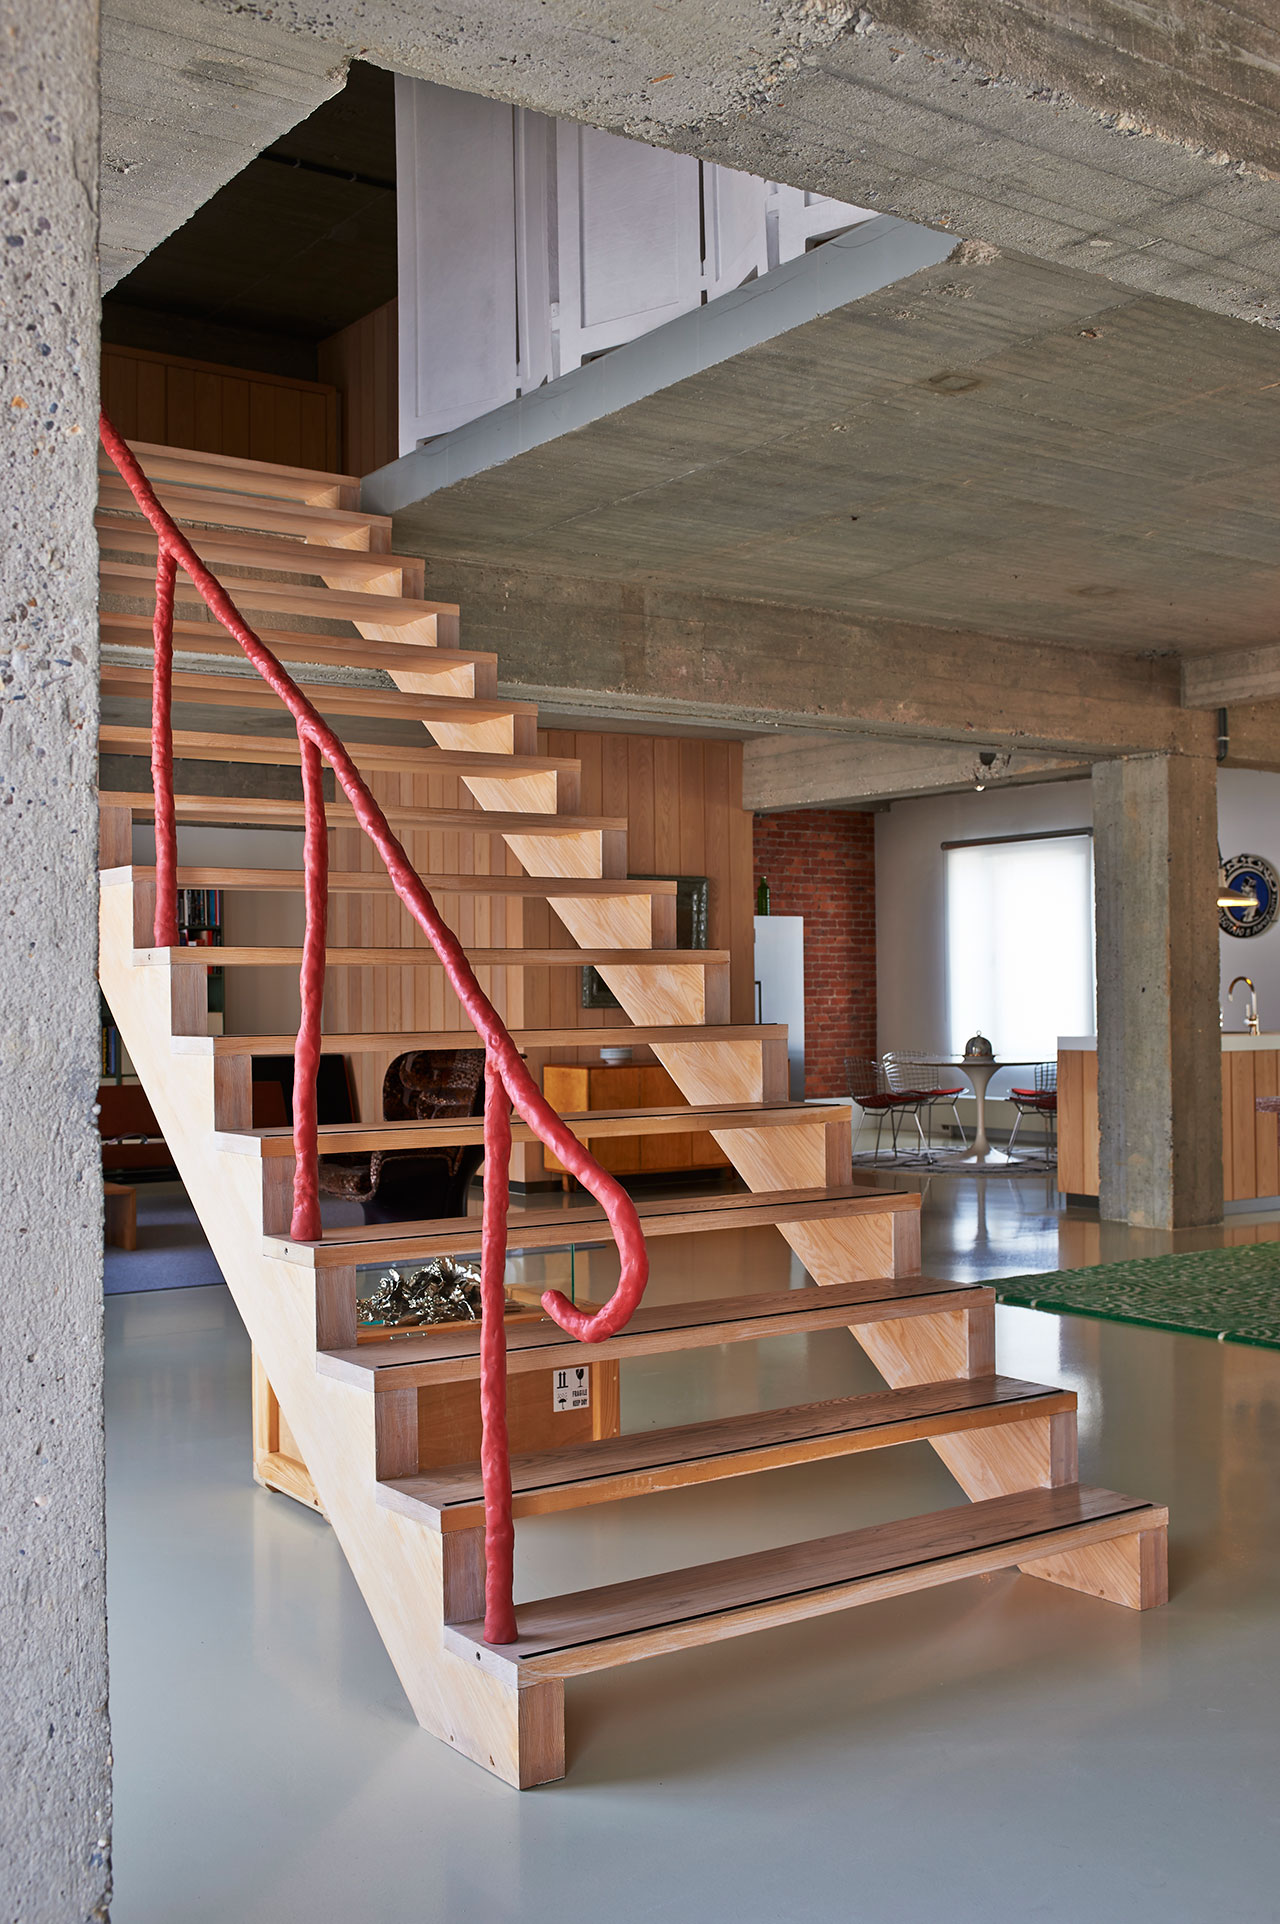 Stairway. Handrail: Clay, Maarten Baas, 2010. Roundtable: Knoll Eero Saarinen, 1953. Dome: Dome, Last Supper, Studio Job, 2009. Photo by Dennis Brandsma.